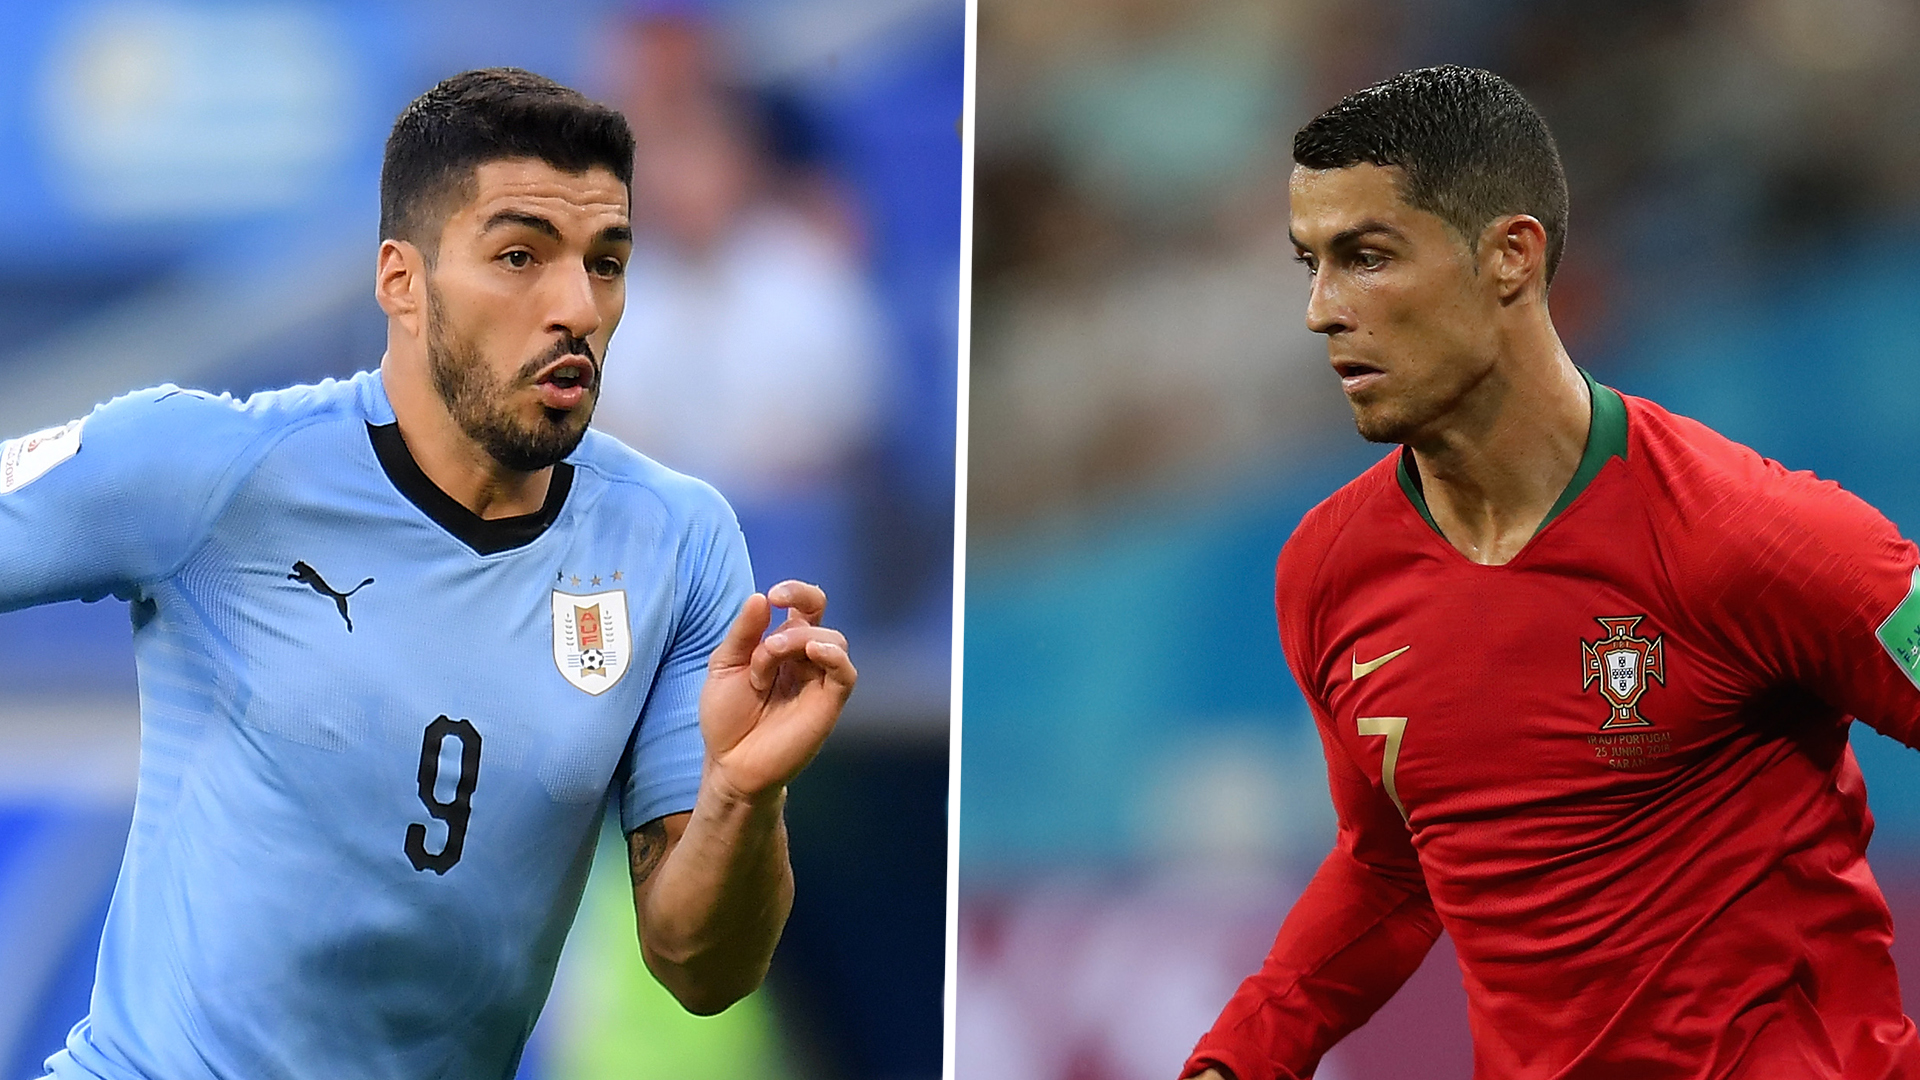 Portugal-Uruguay clash more than Ronaldo, Suarez - Alves